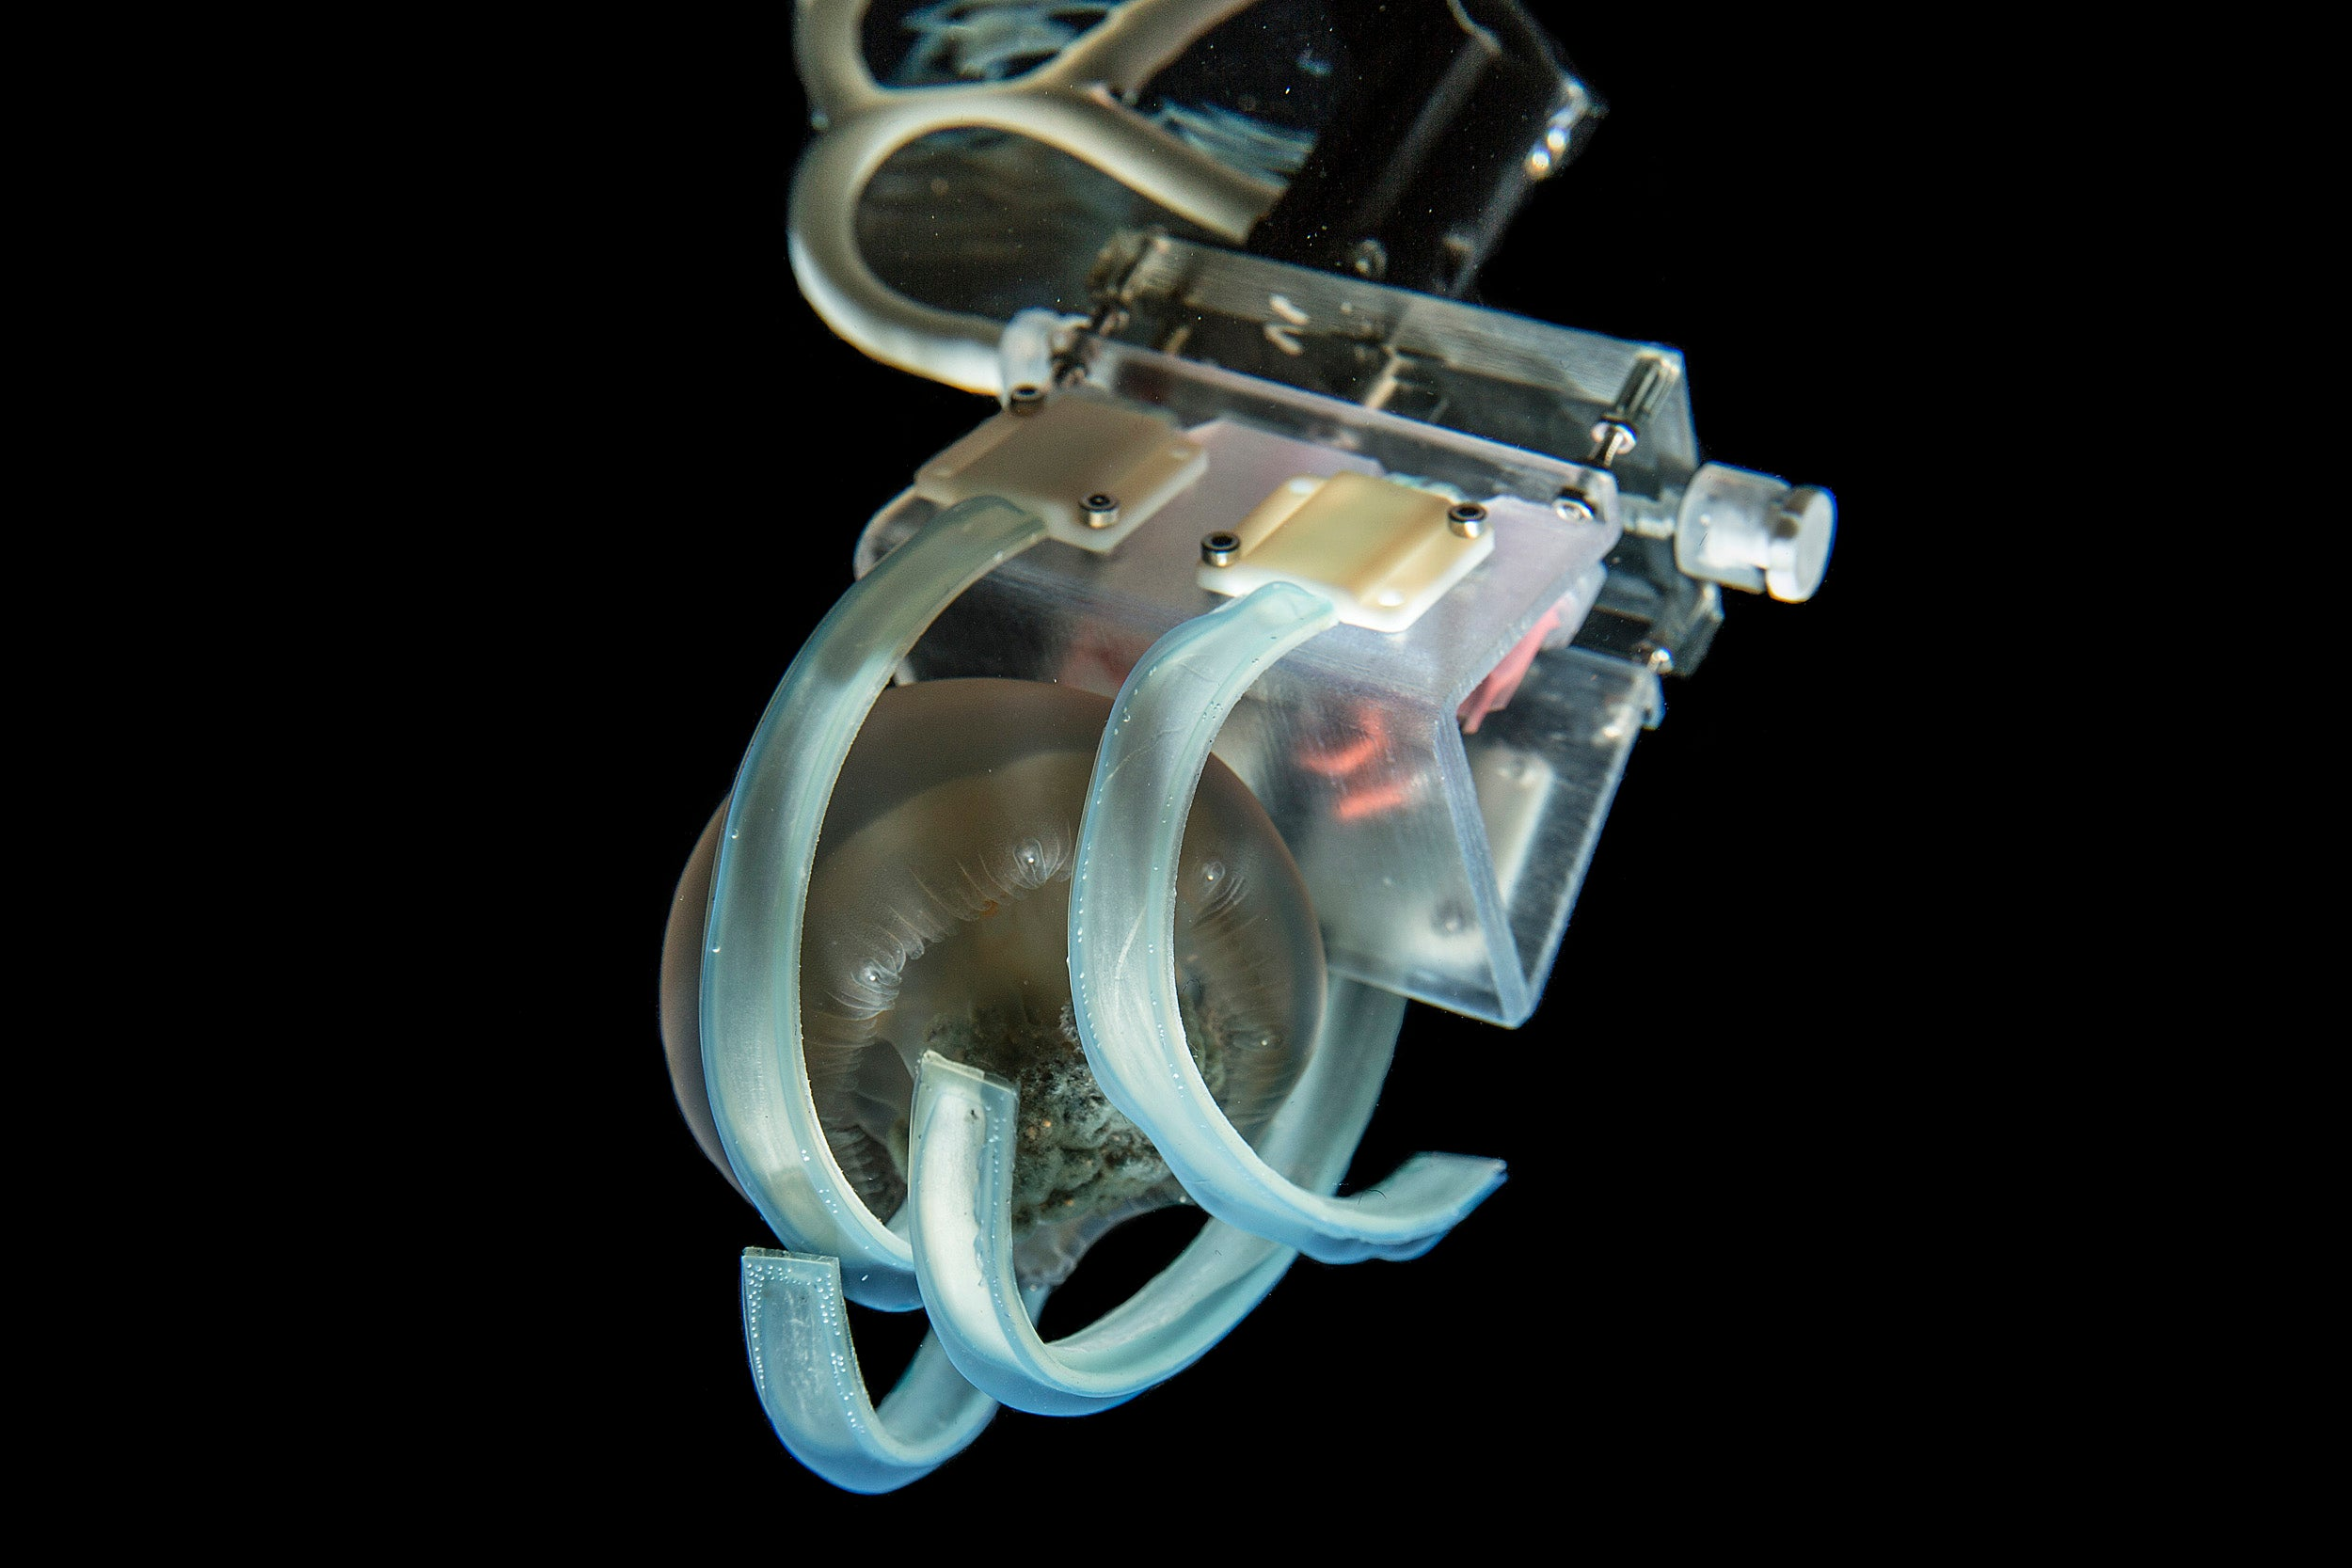 Soft robotic grippers for jellyfish